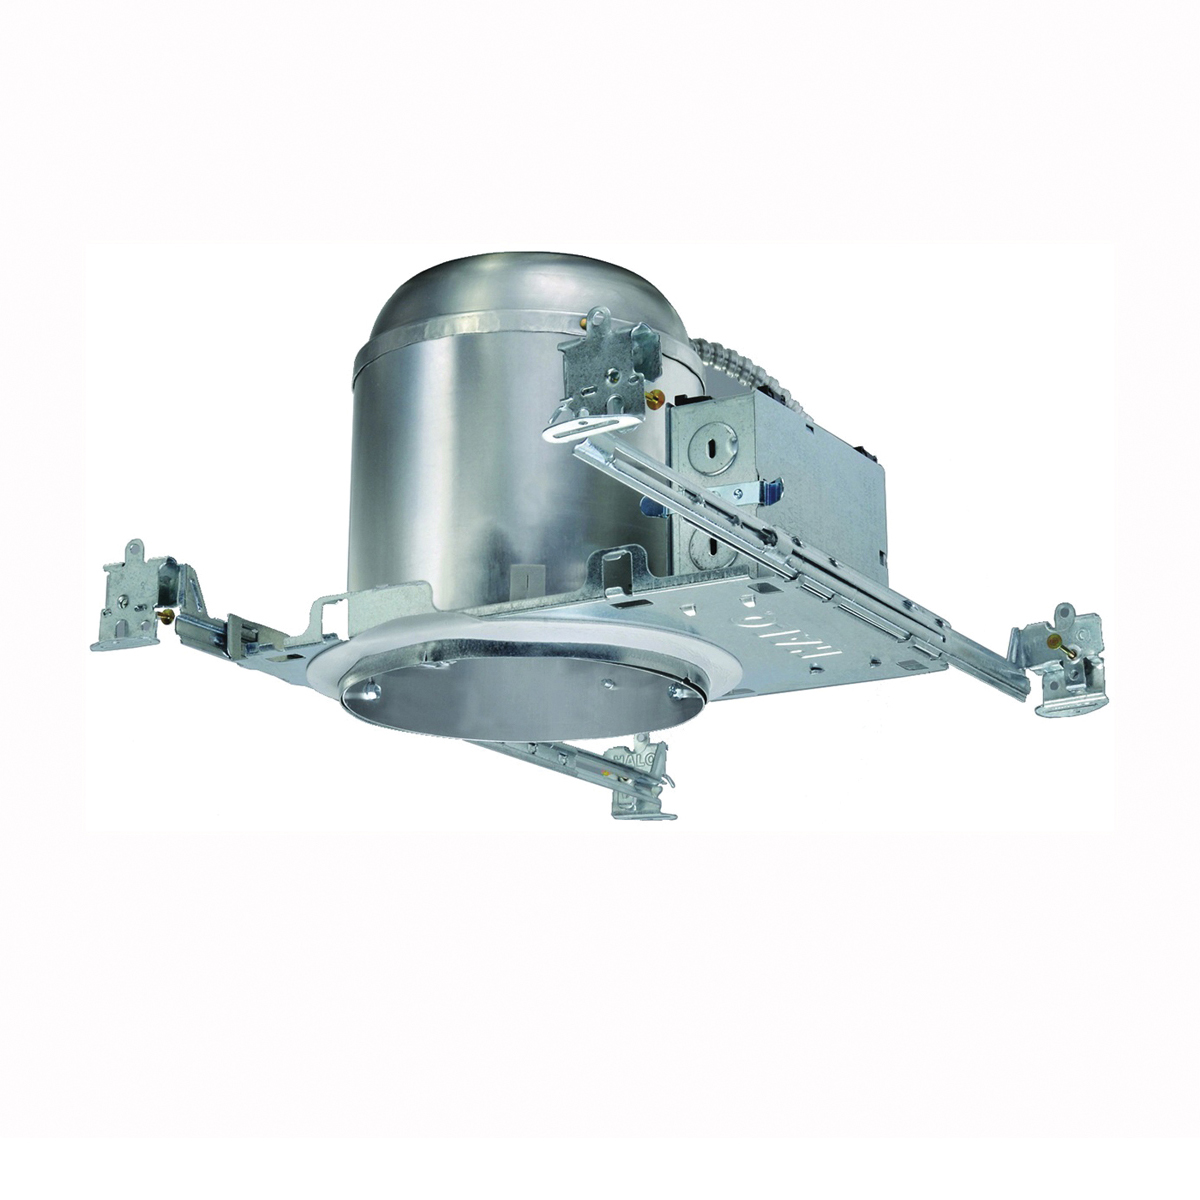 Picture of Halo 11856257 Light Housing, 6 in Dia Recessed Can, Aluminum